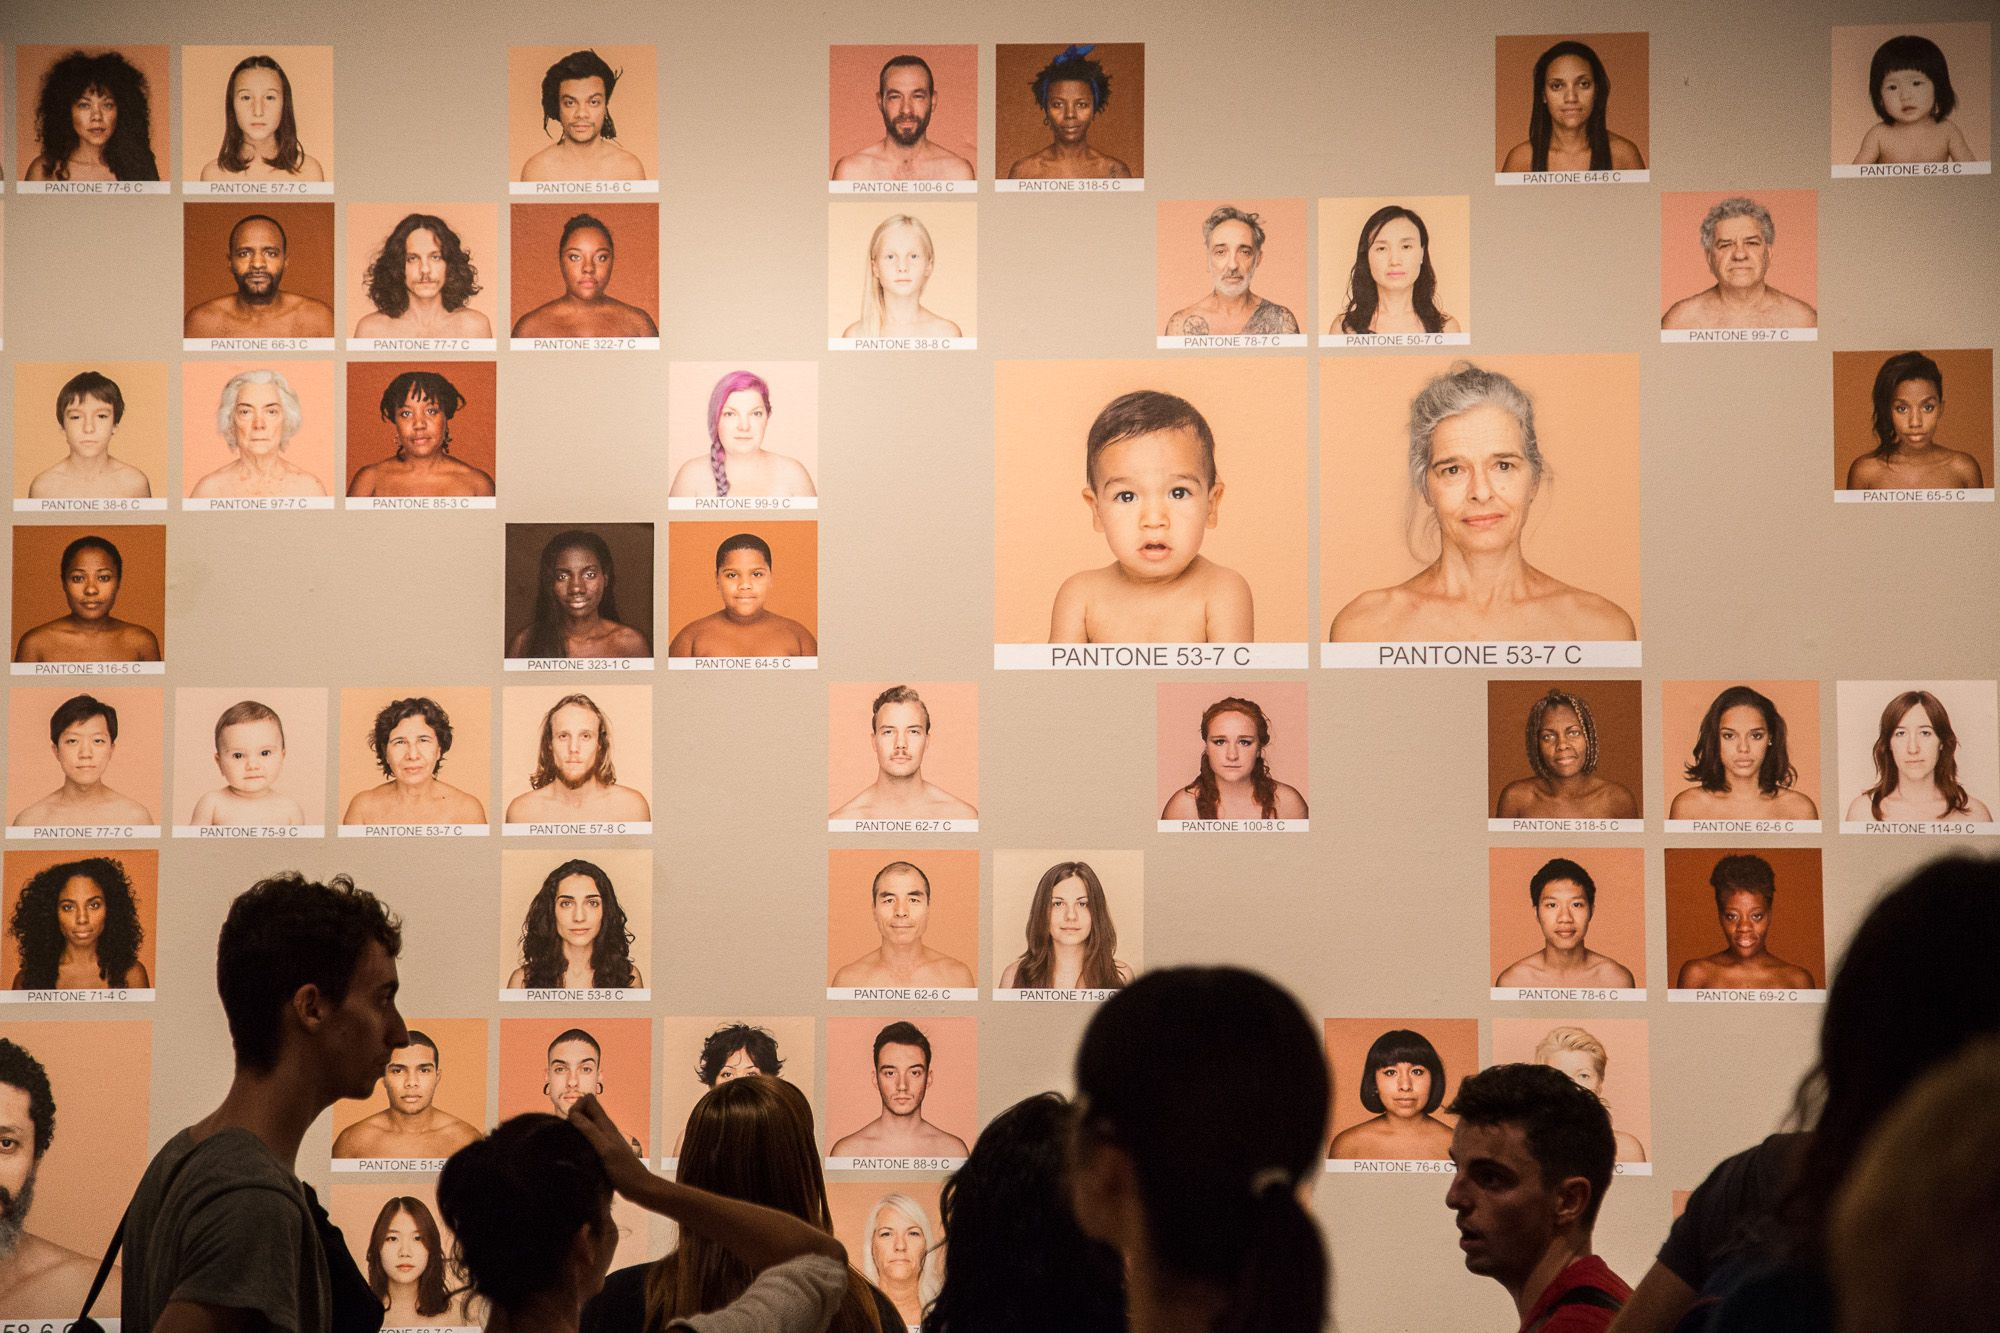 Meet The Woman Making A Point About Race By Photographing